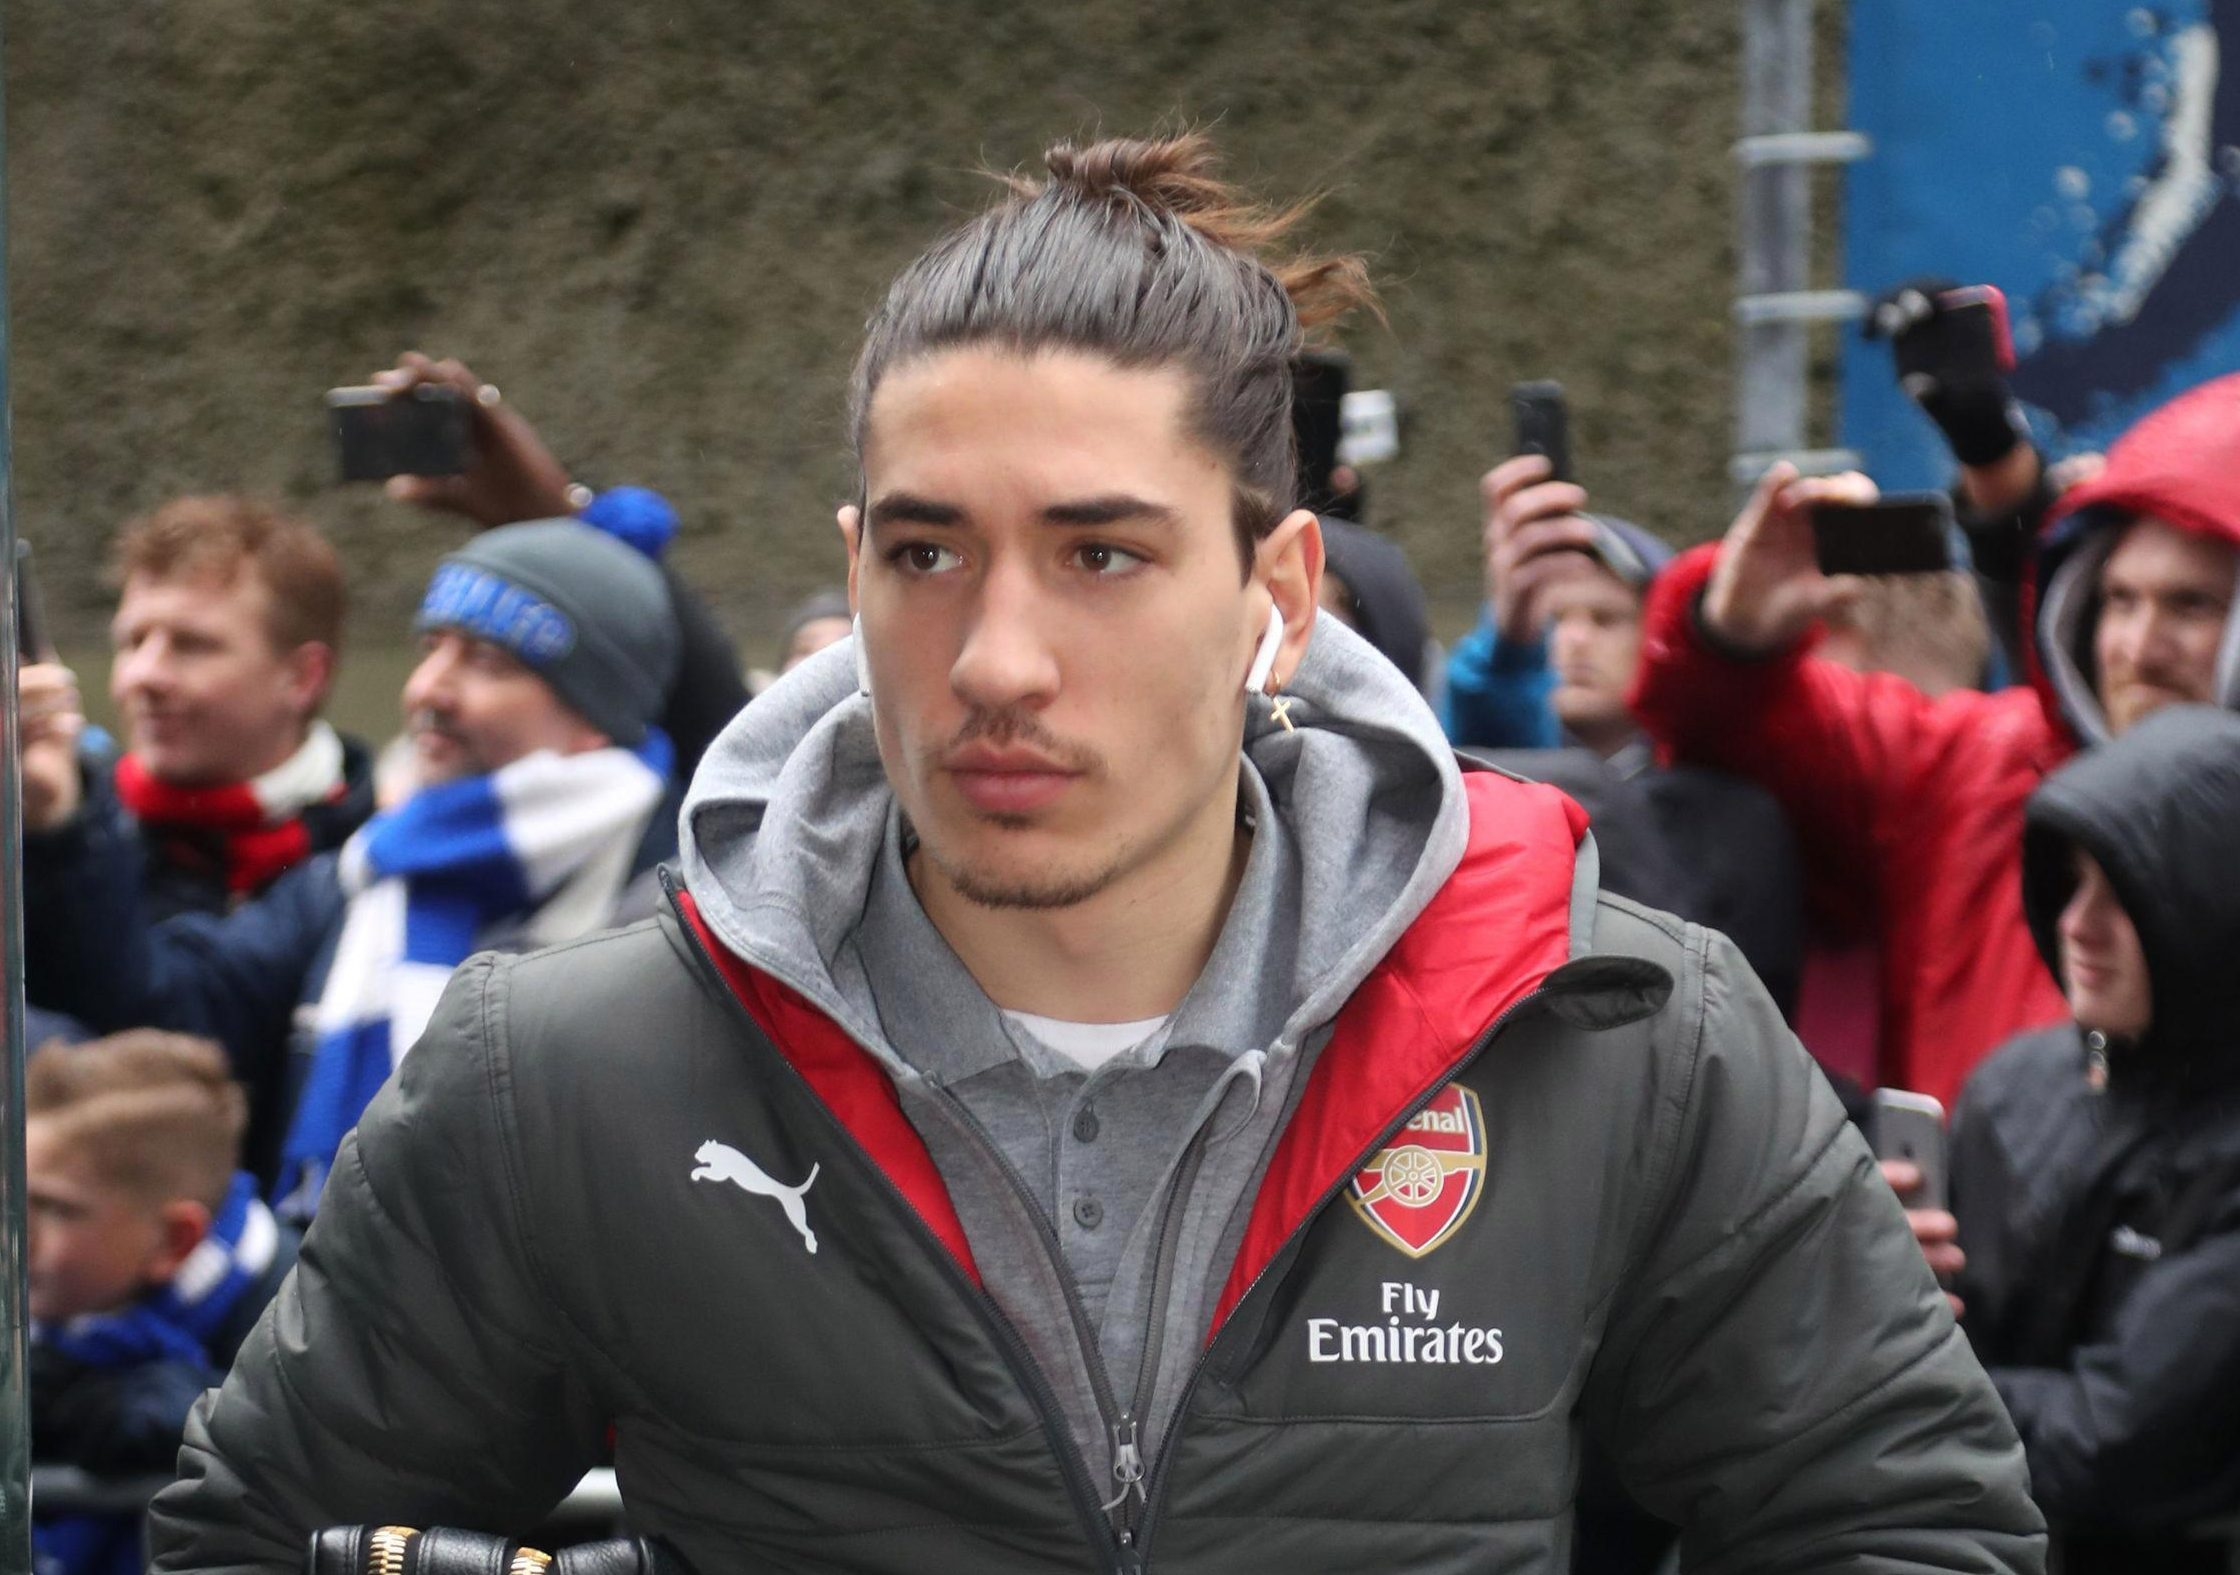 Arsenal news: Hector Bellerin furious with Arsene Wenger after being axed just TWO hours before Brighton defeat